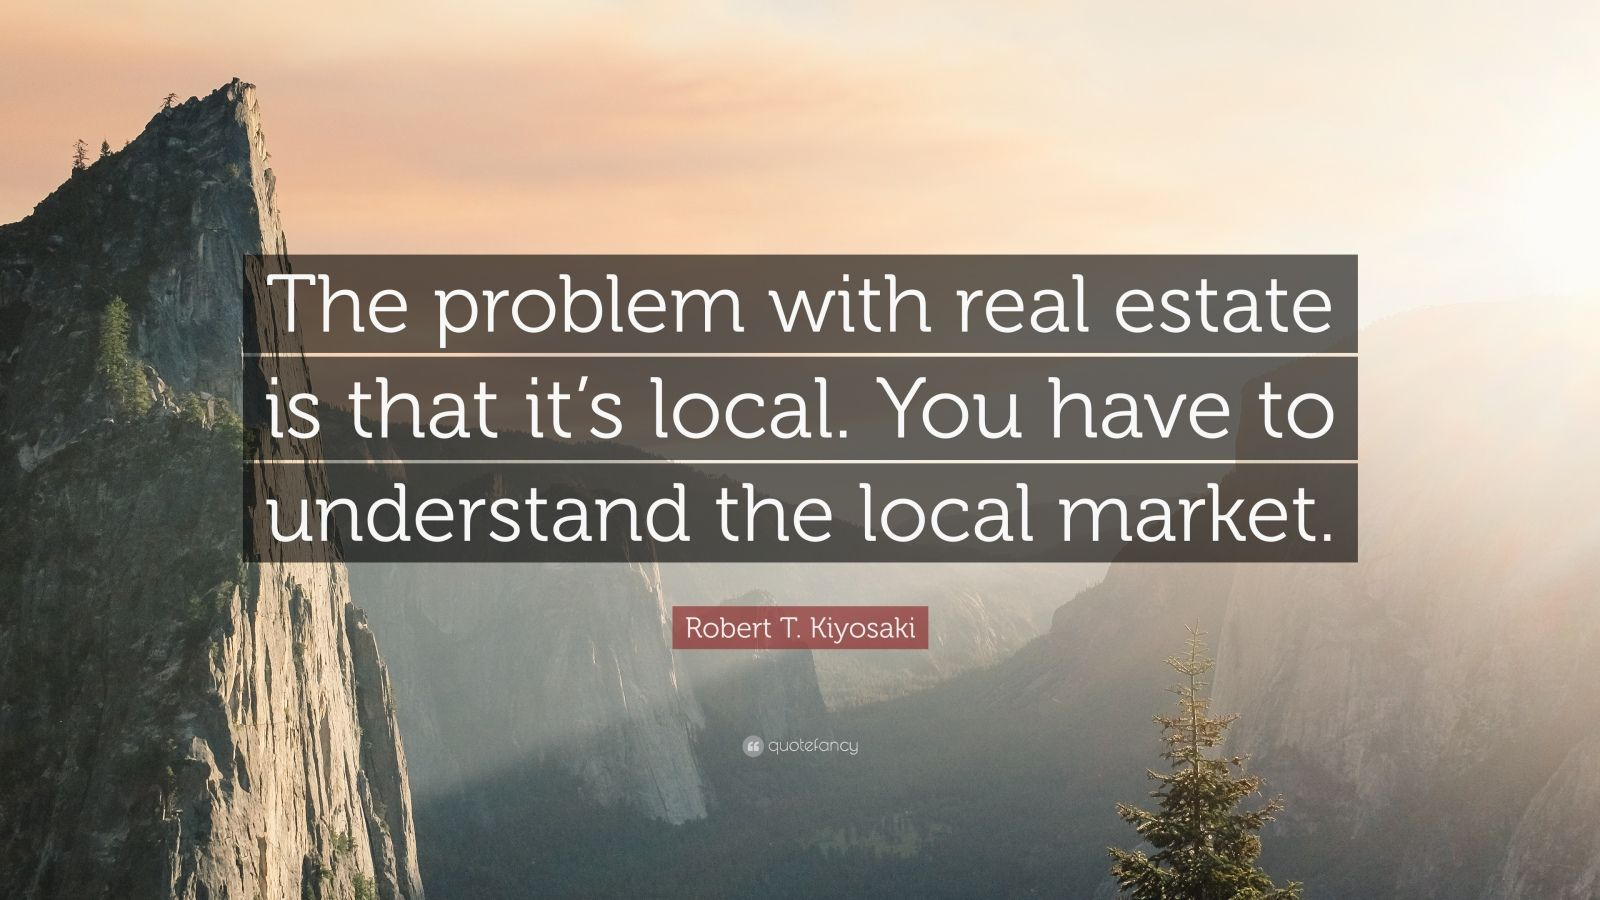 """Robert T. Kiyosaki Quote: """"The problem with real estate is that it's local. You have to understand the local market."""""""